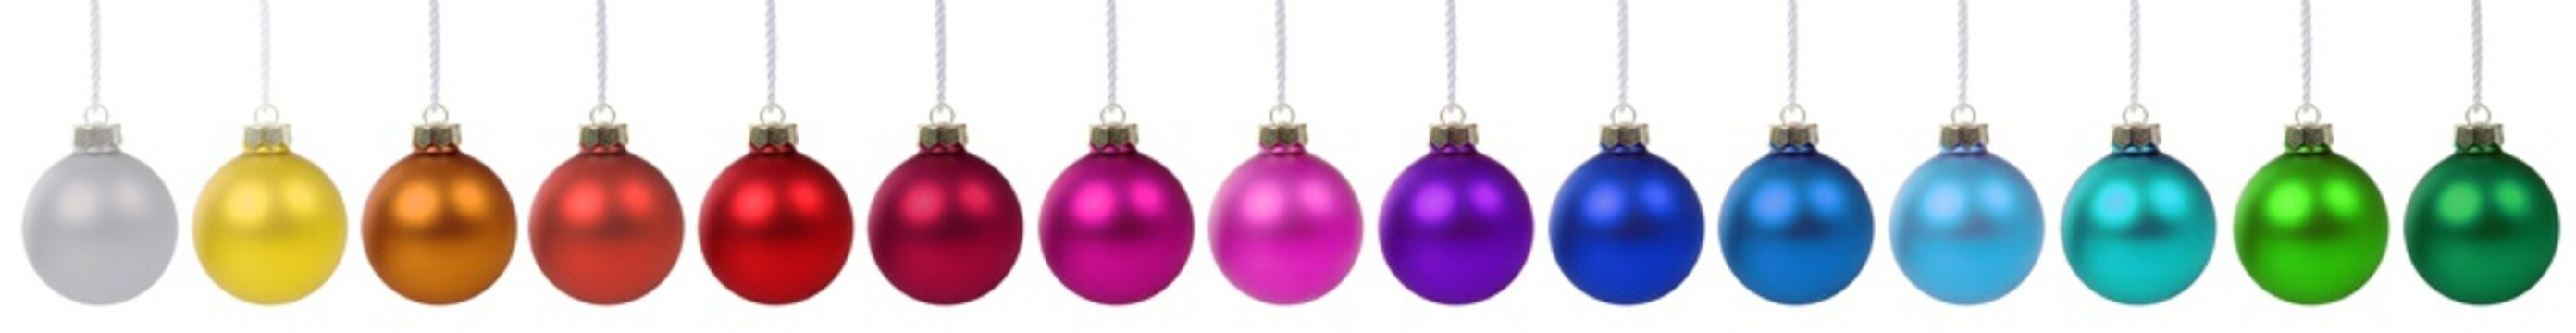 Christmas balls baubles banner ornament colorful decoration in a row isolated on white